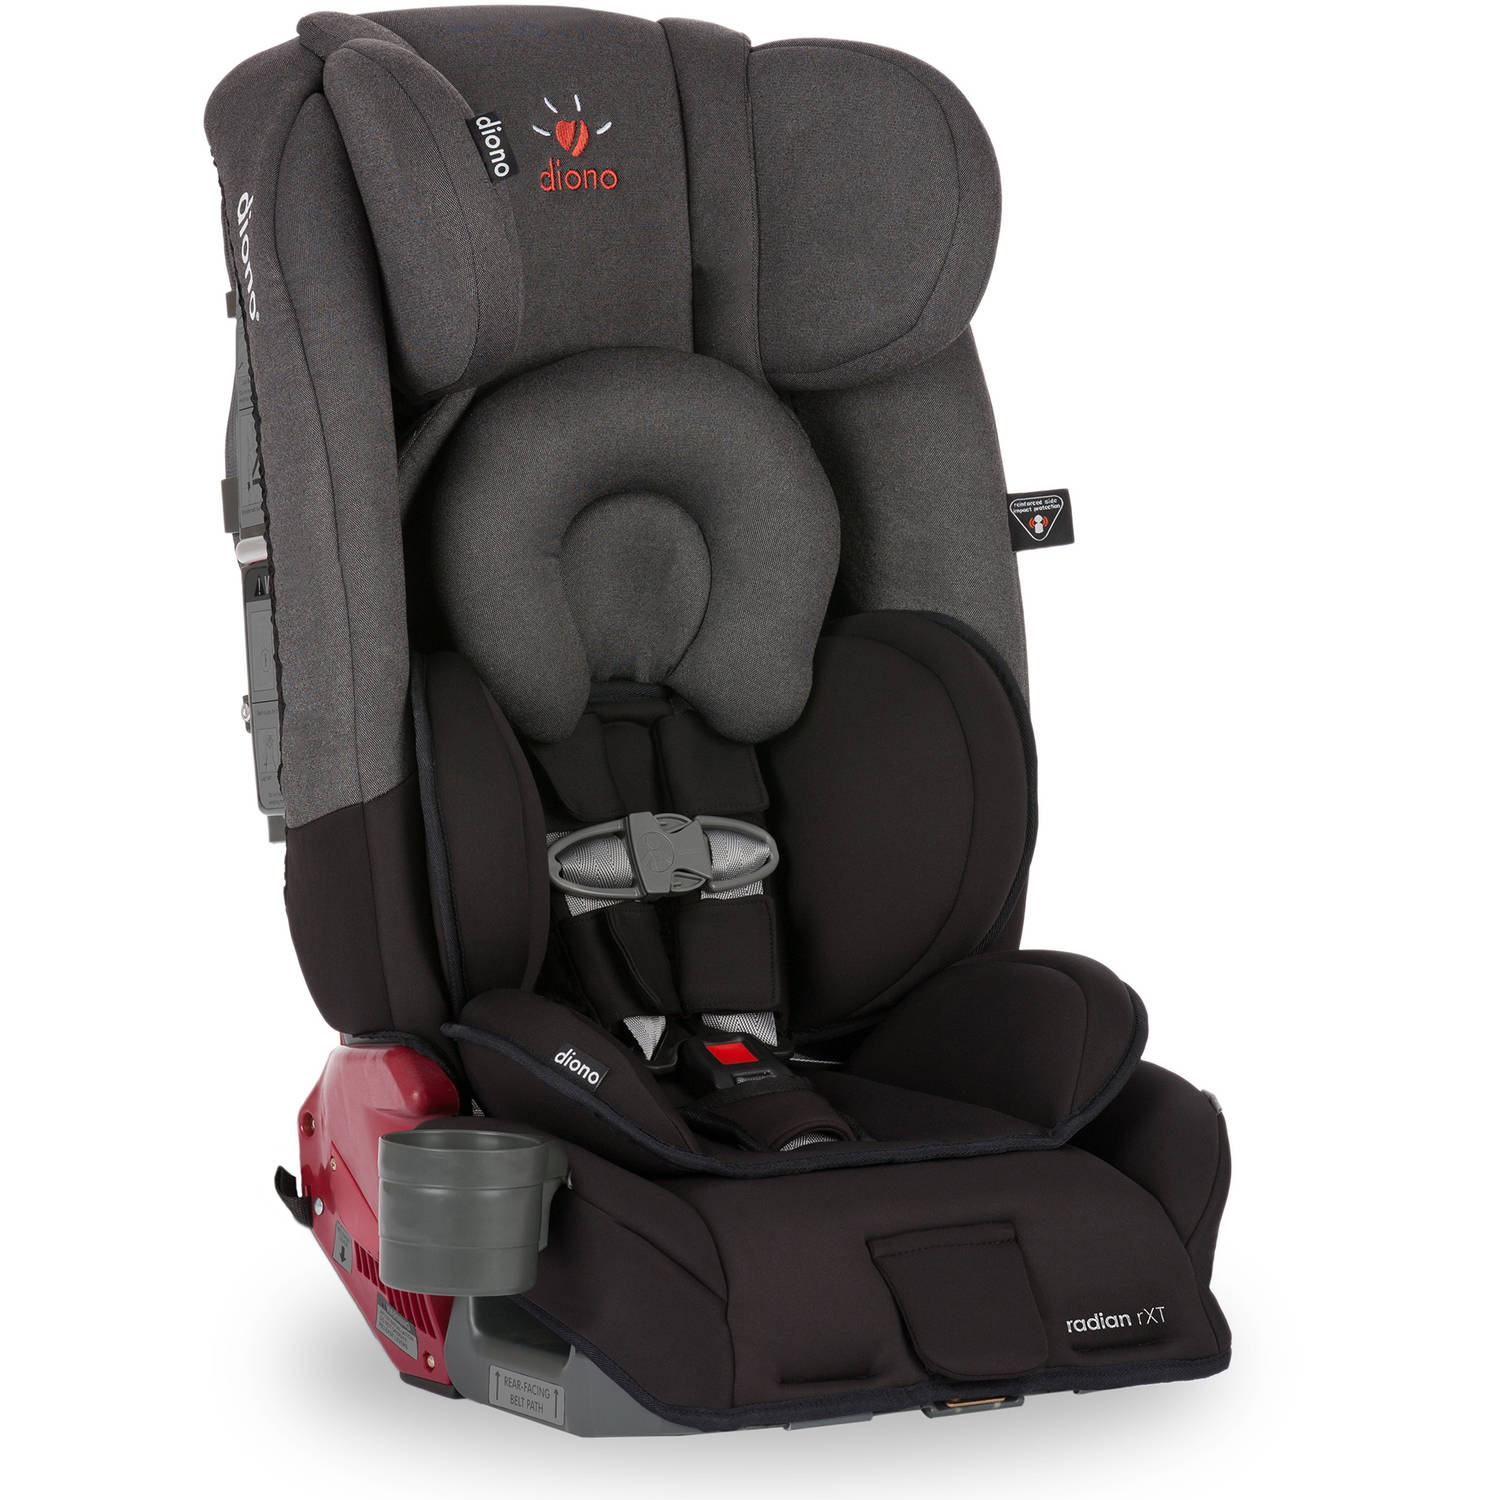 Diono Radian rXT Convertible Car Seat and Booster, Black Mist